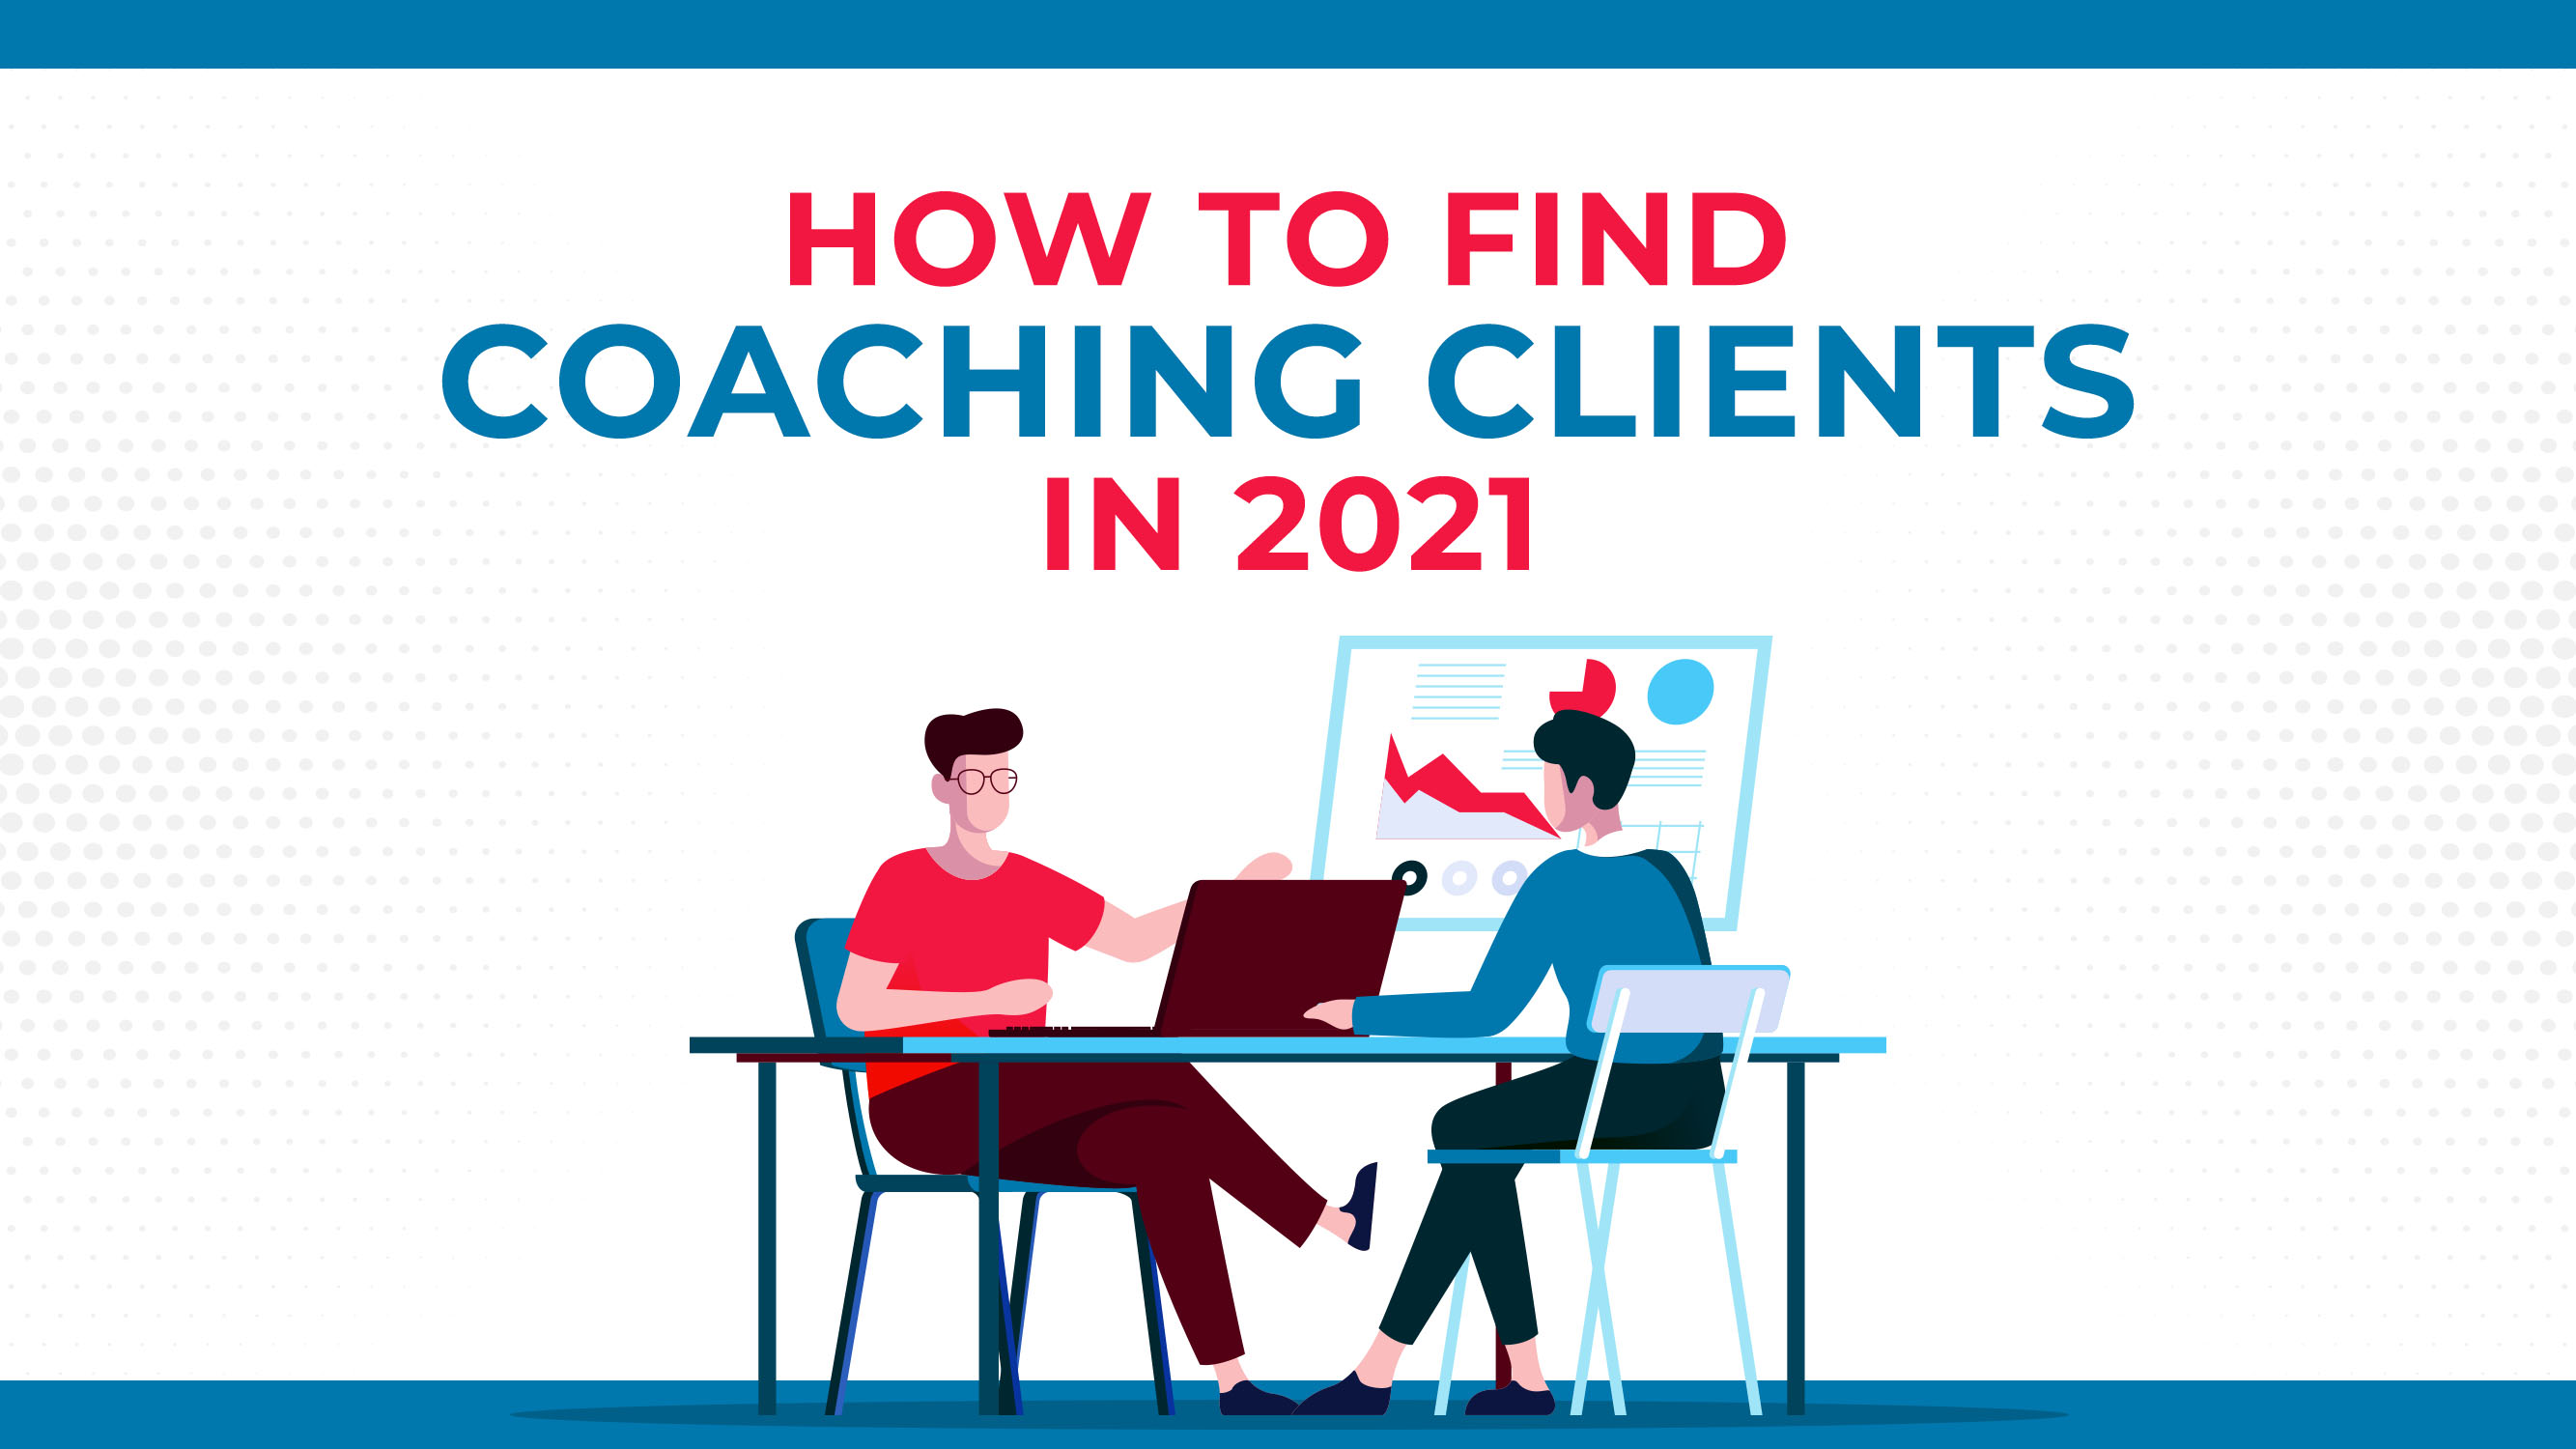 How To Find Coaching Clients in 2021